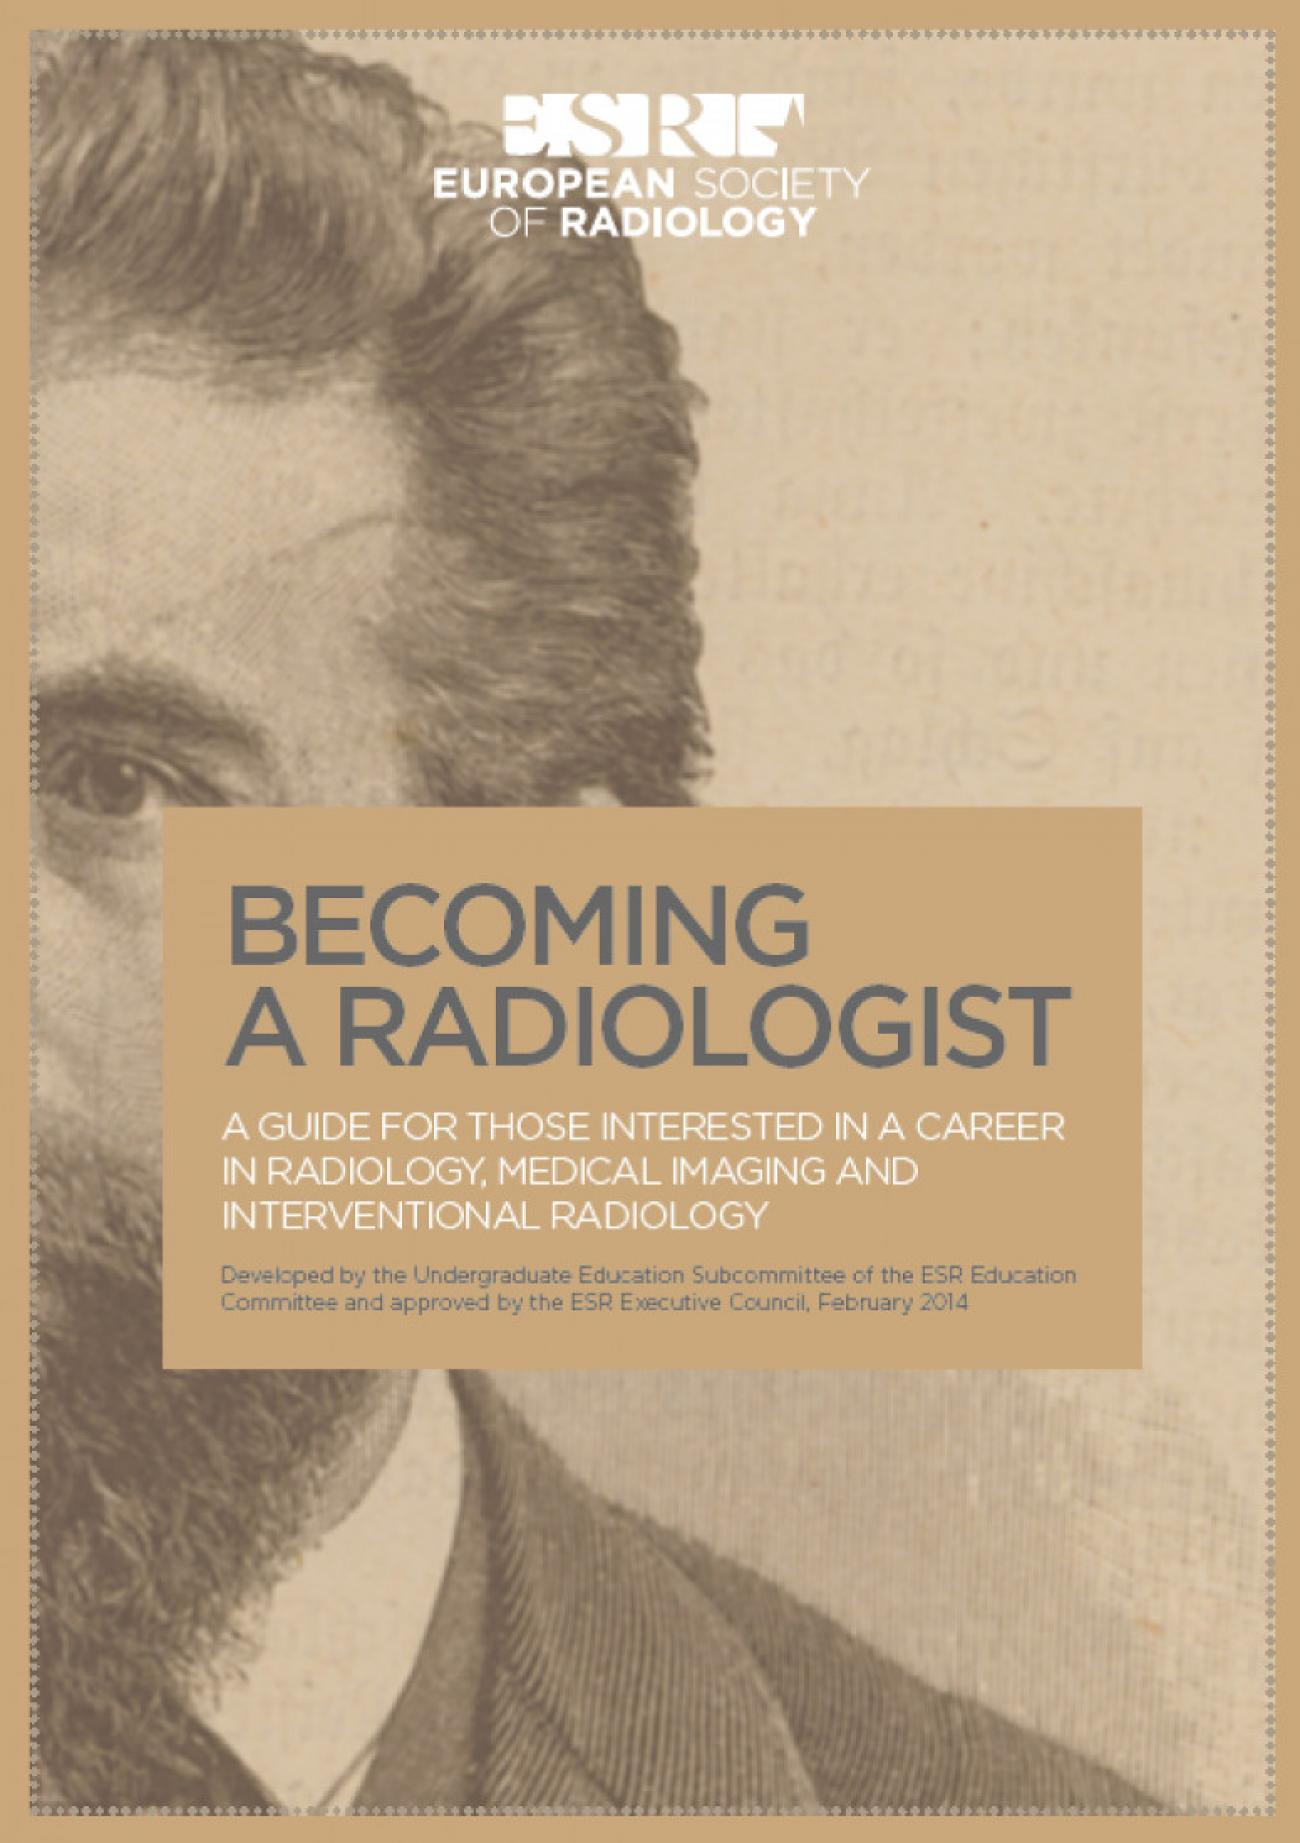 Undergraduate Education in Radiology | European Society of Radiology